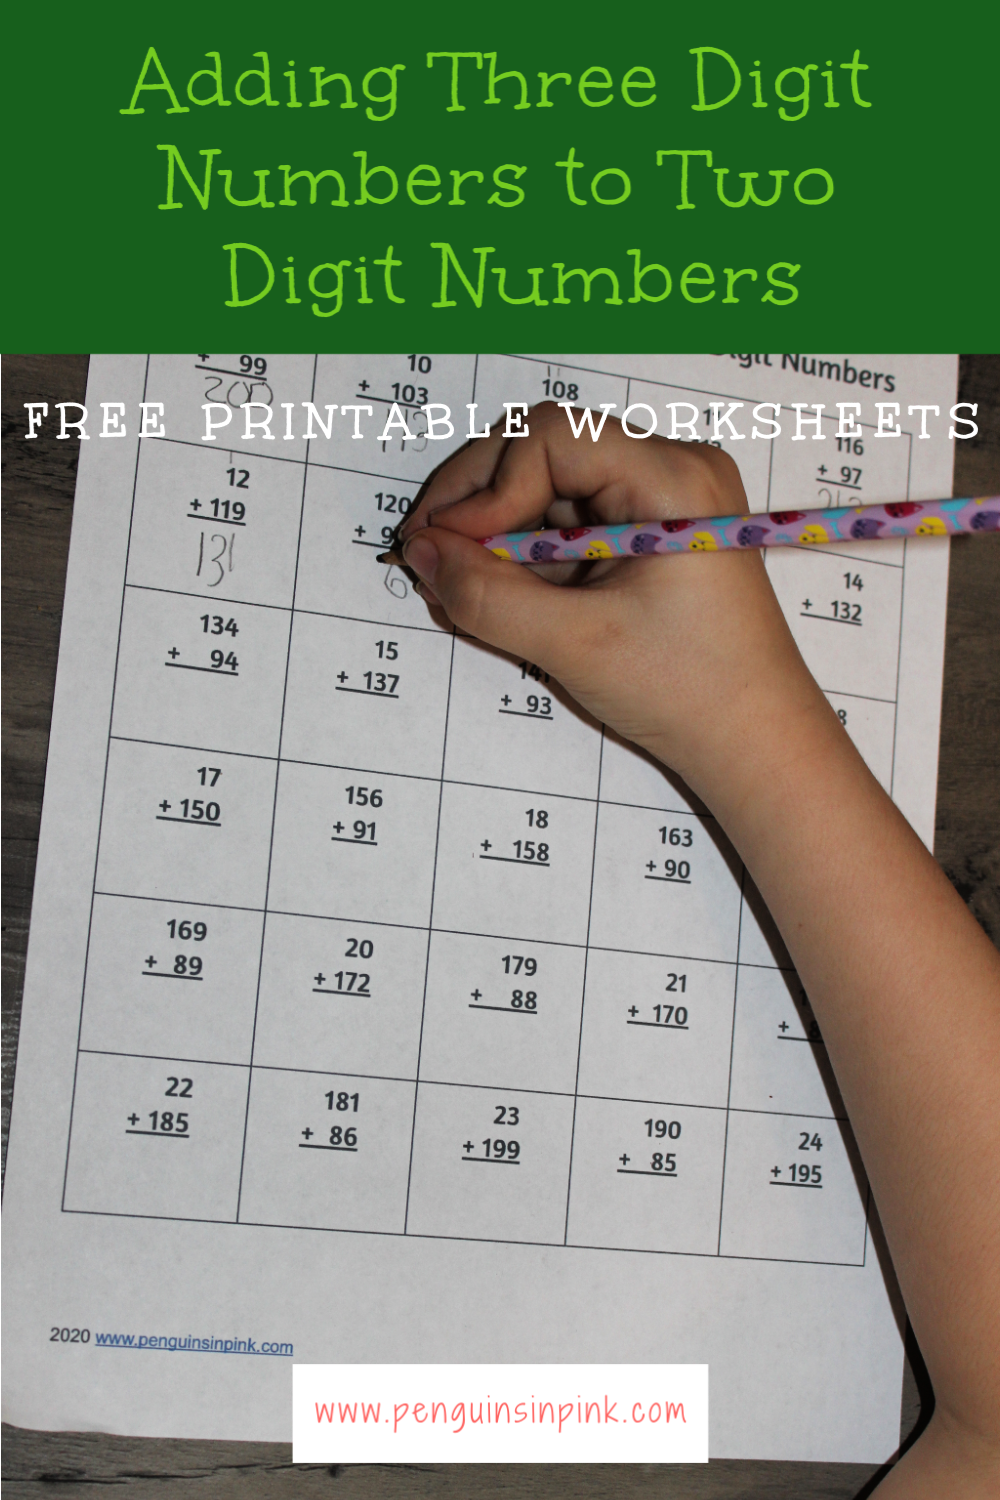 These FREE printable adding three digit numbers to two digit numbers worksheets contain 13 pages of adding from 100 to 999. Each page of the packet contains 30 problems.